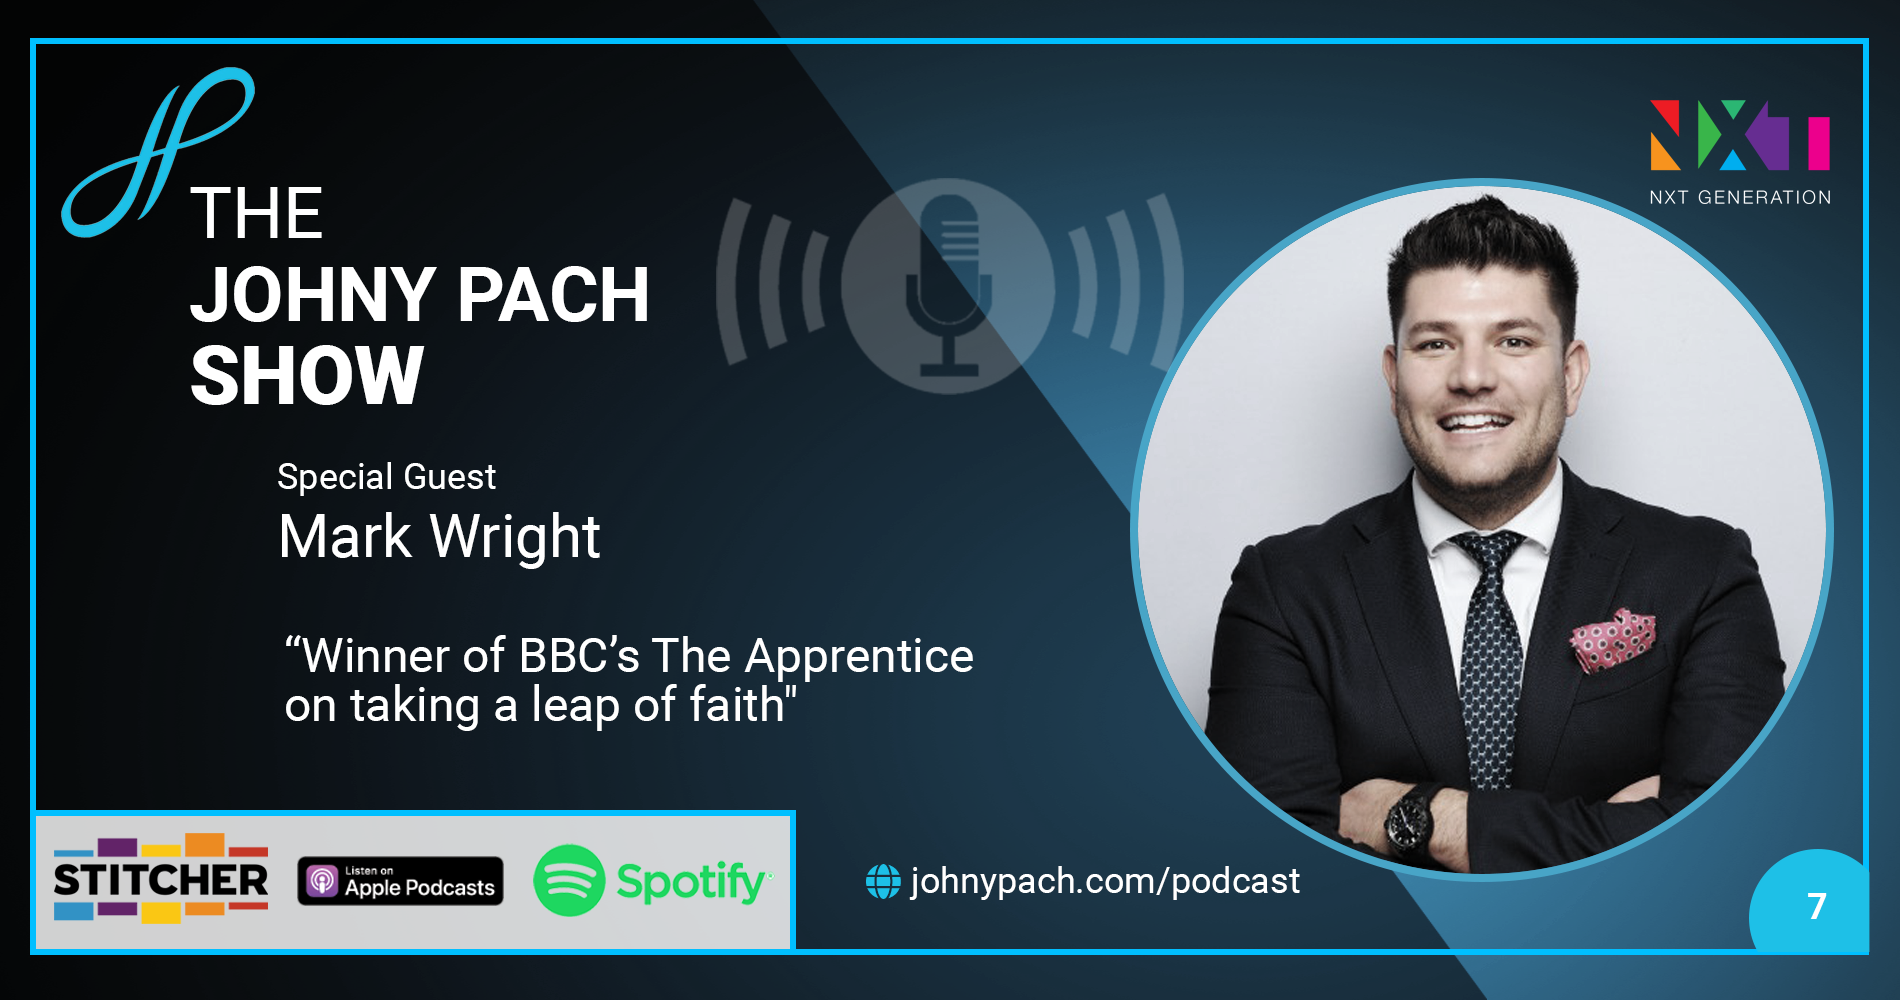 //johnypach.com/wp-content/uploads/2020/06/Podcast-Markwright-ep7-1900x1000-1.png